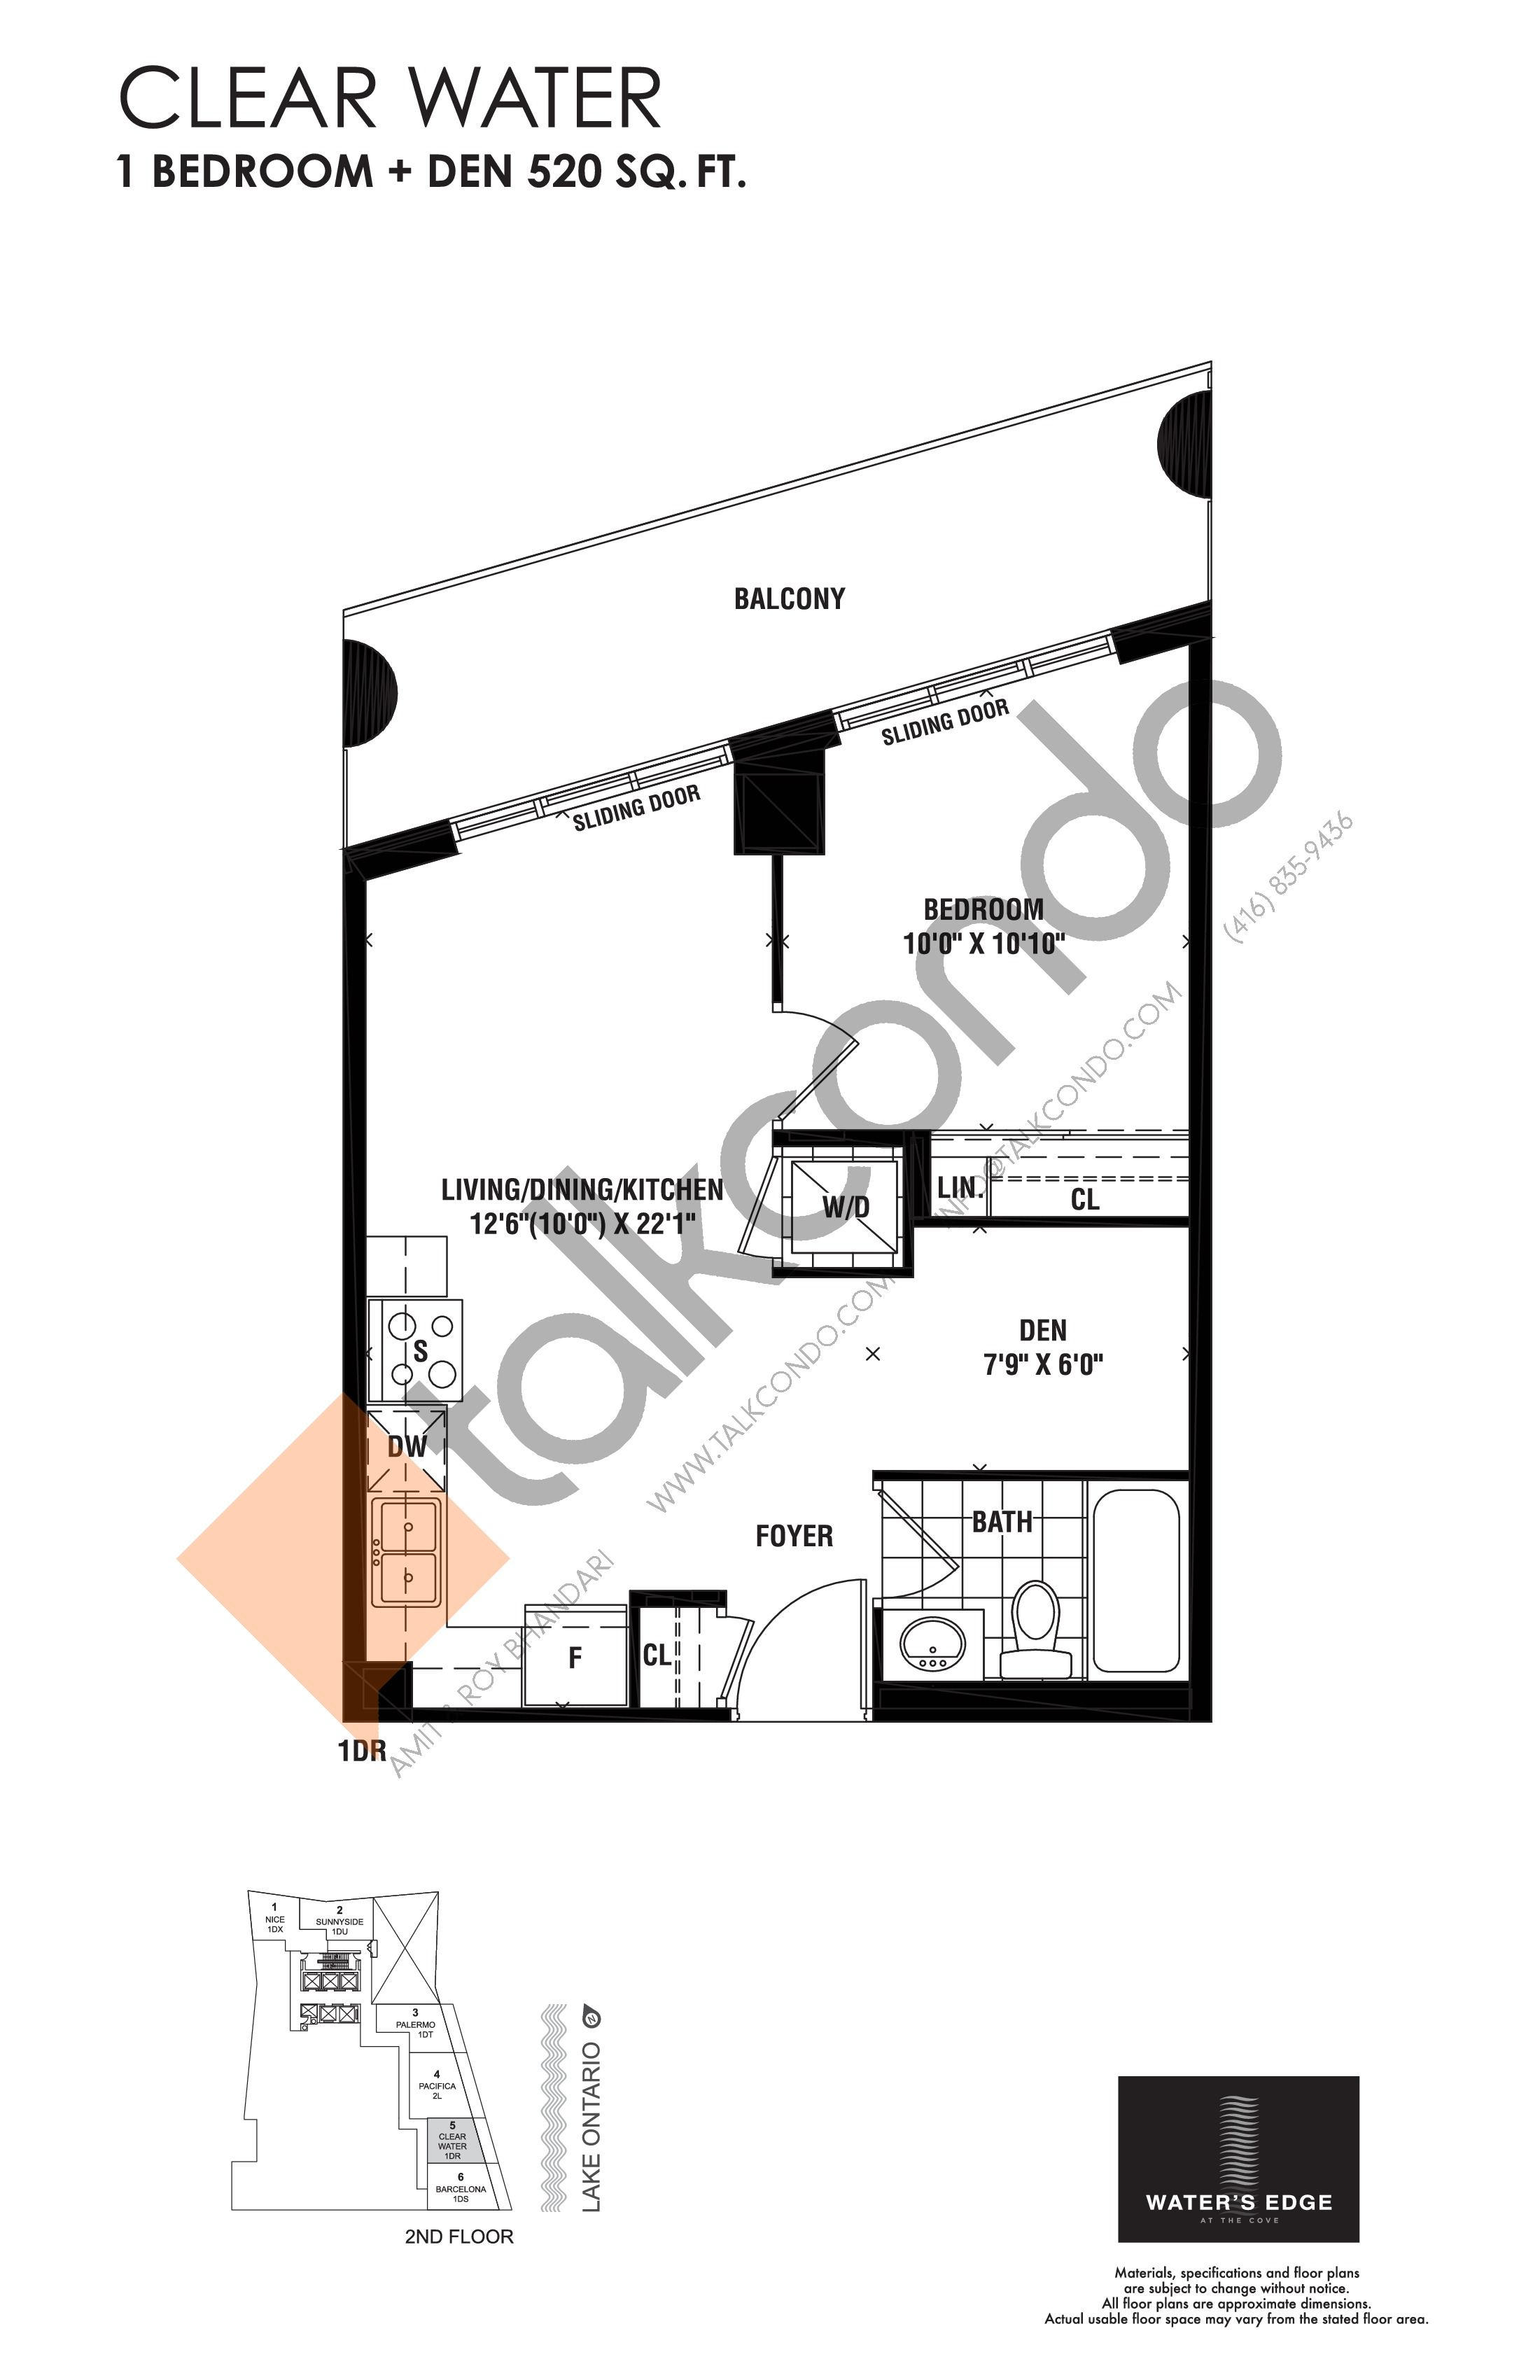 Clear Water Floor Plan at Water's Edge at the Cove Condos - 520 sq.ft